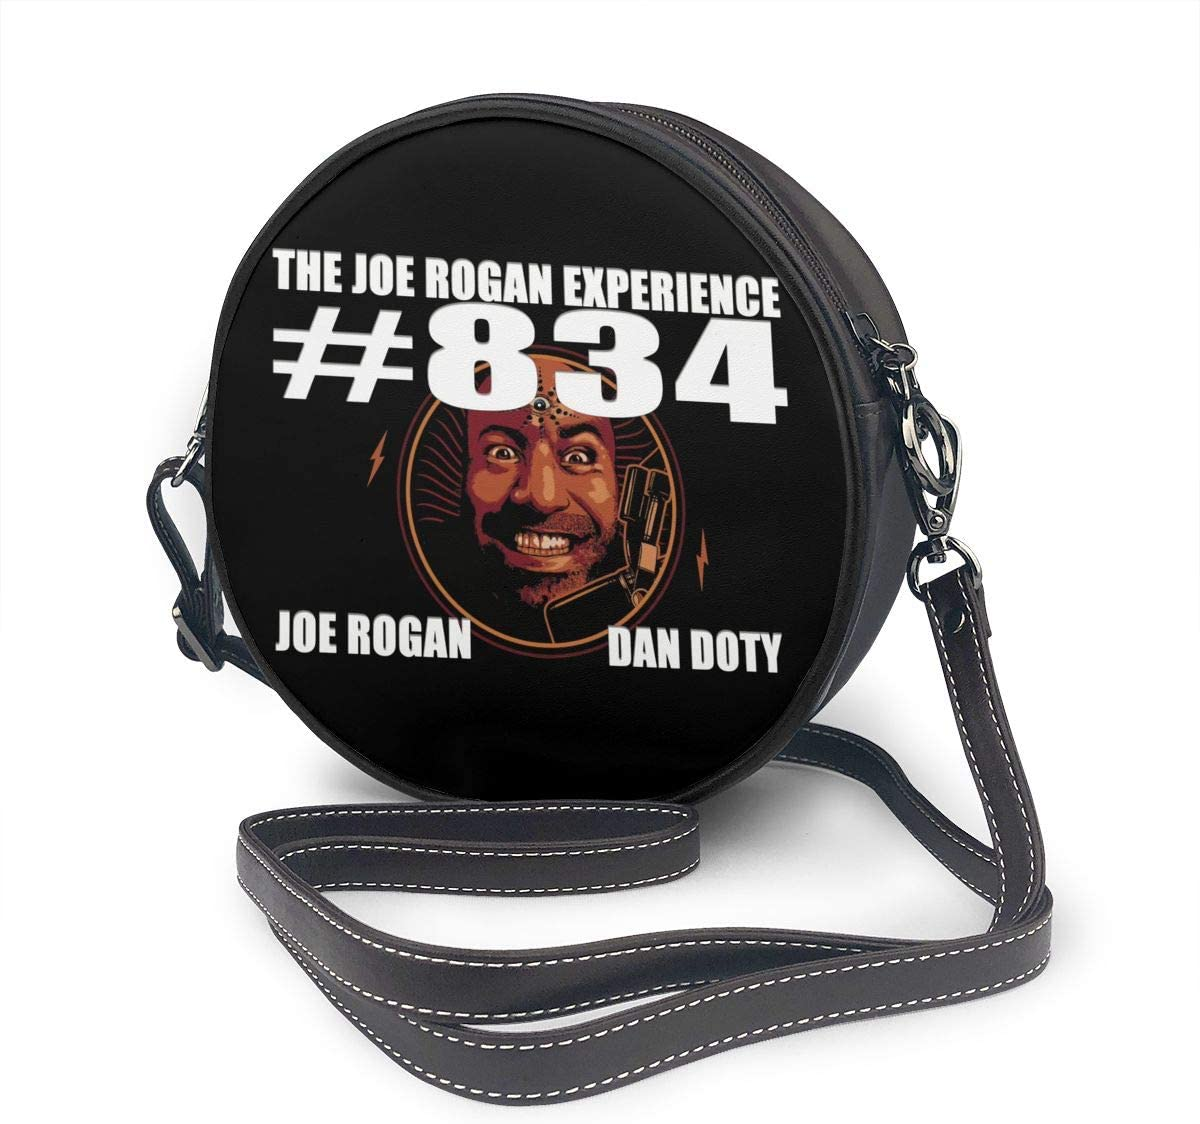 Huaichuanhua The Joe Rogan Experience Leather Shoulder Round Bag